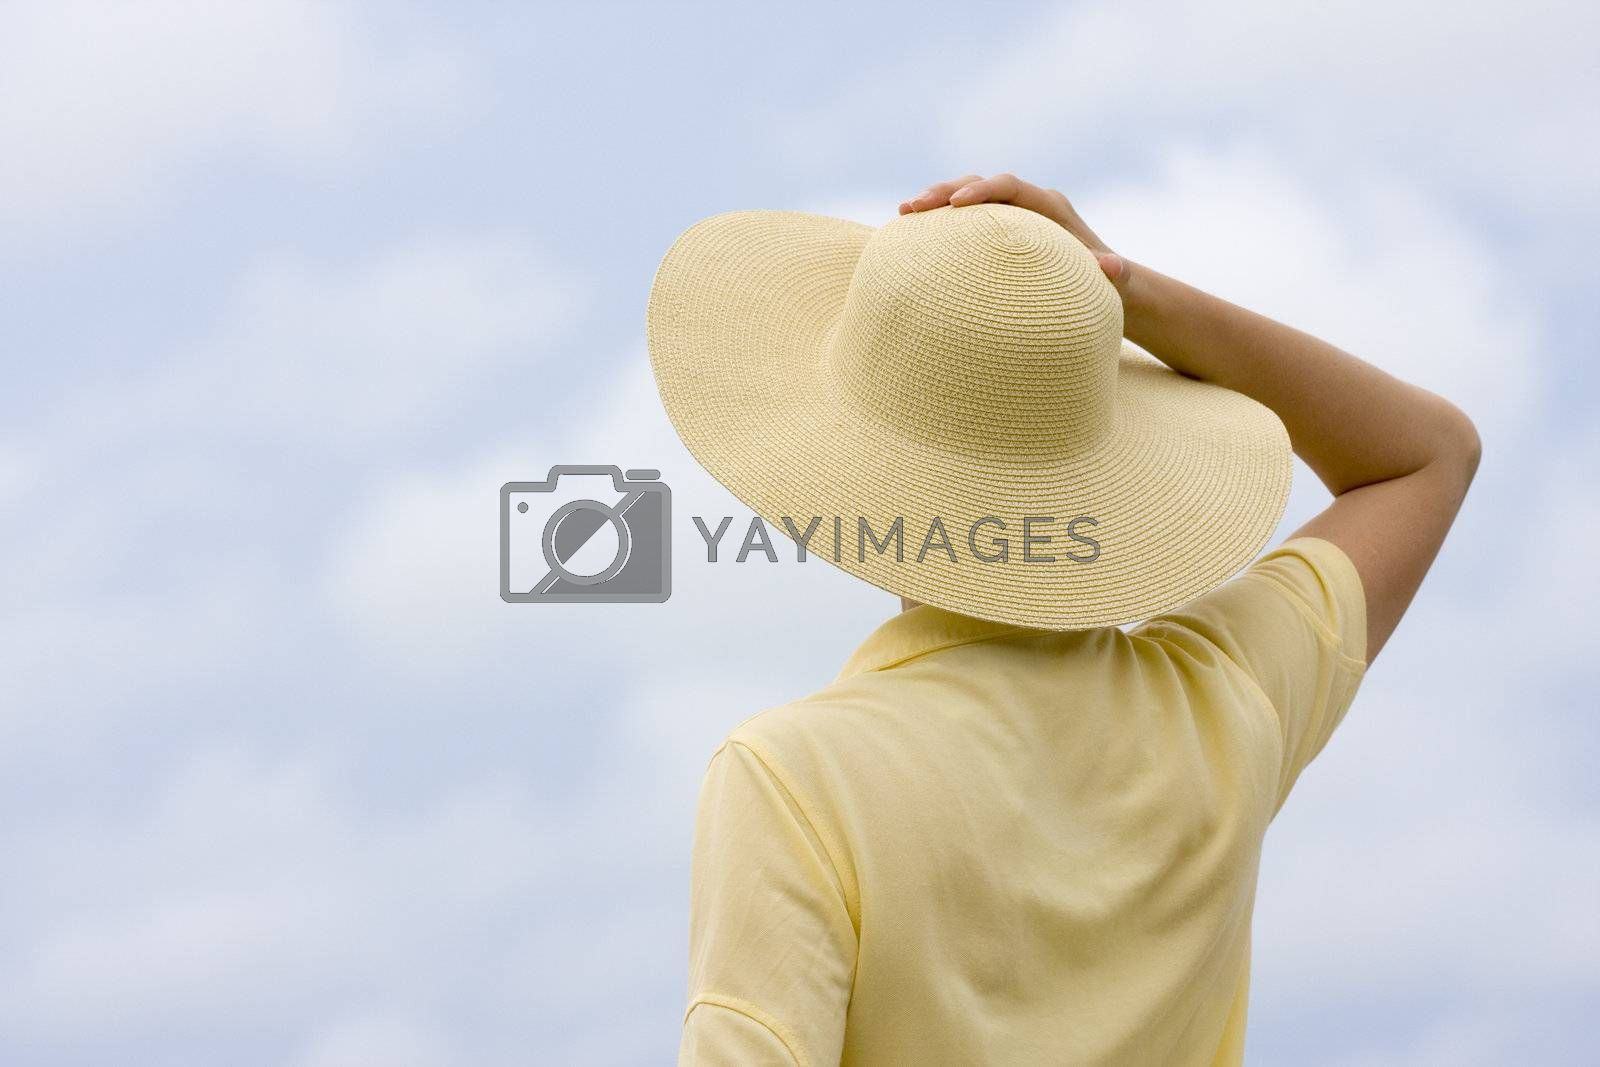 Womann with yellow hat and shirt in front of a sky with clouds